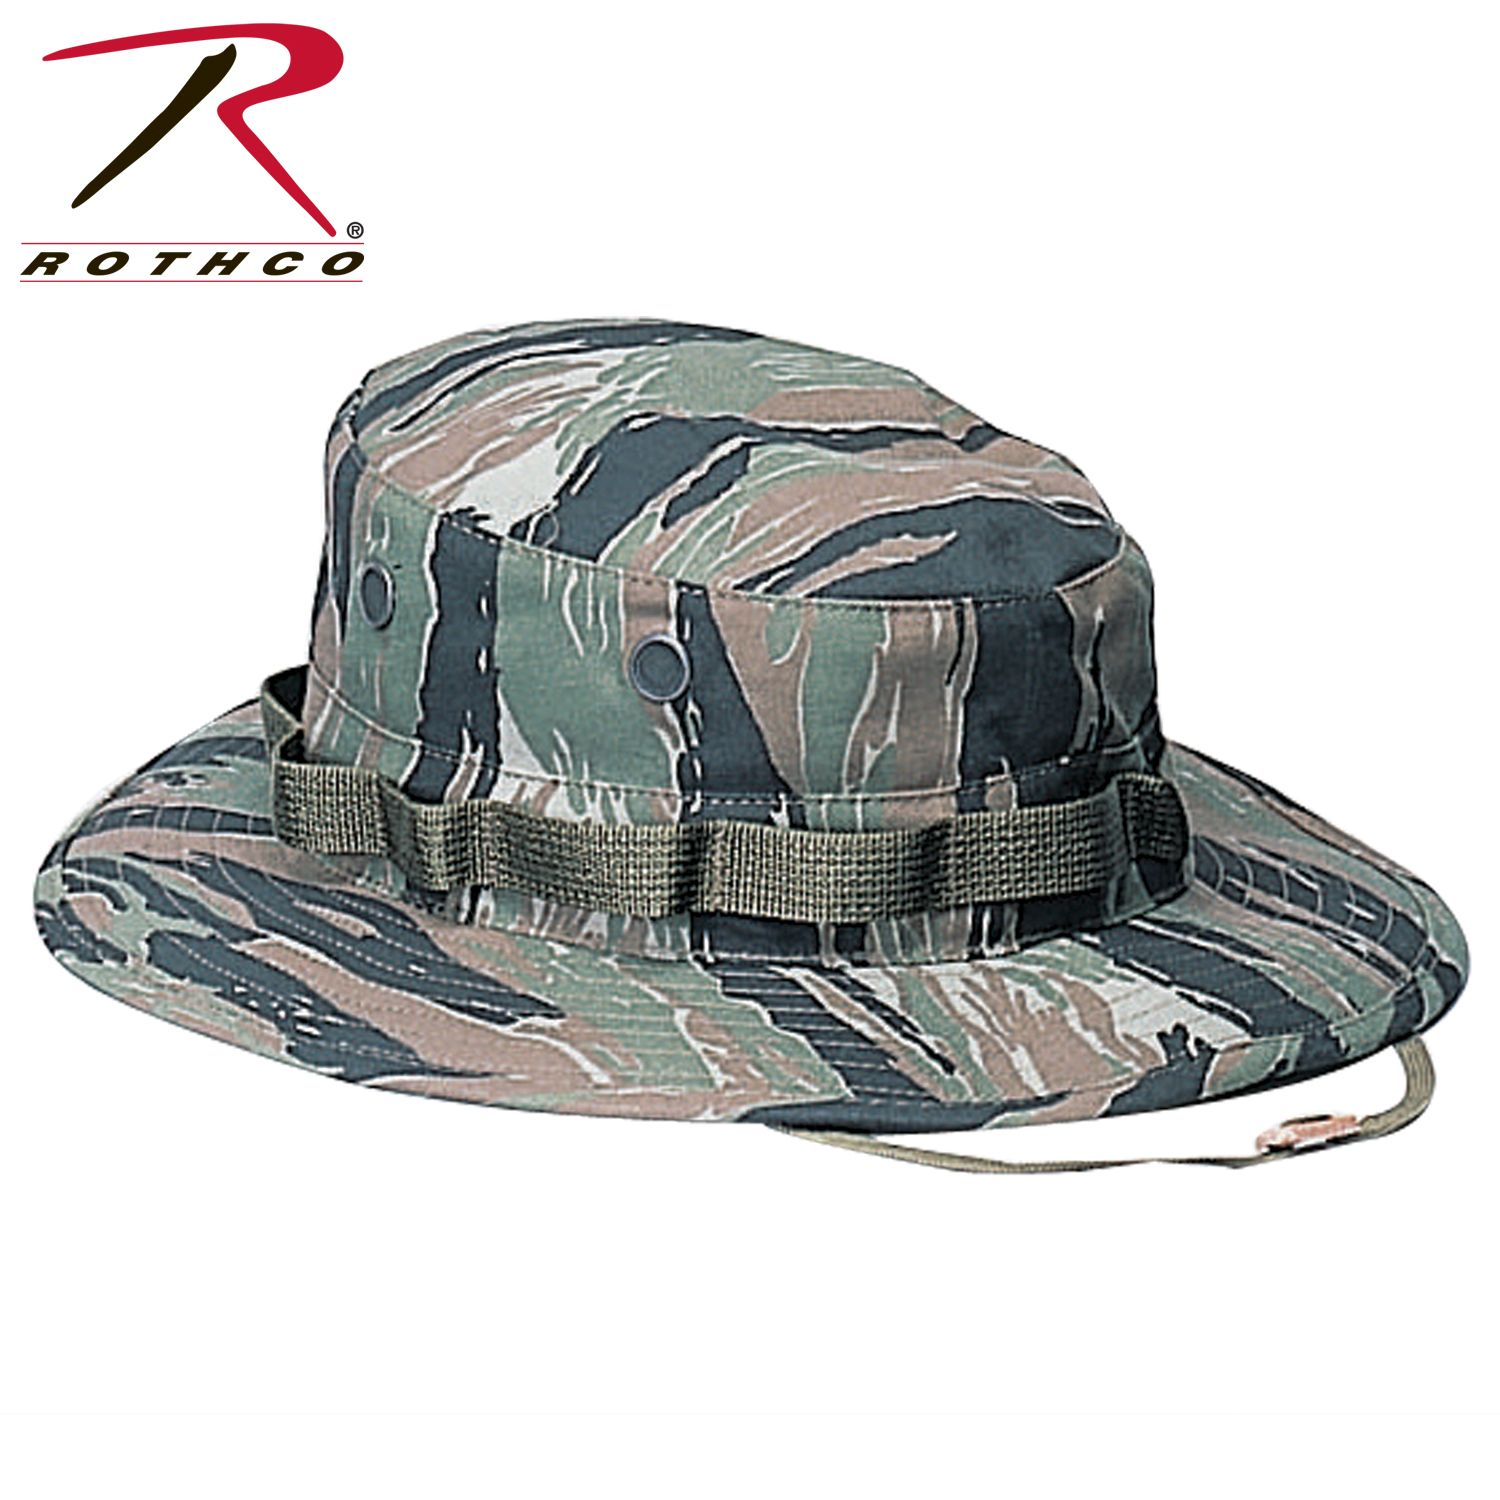 5d0eb38560d Buy Rothco Camo Boonie Hat - Rothco Online at Best price - OK